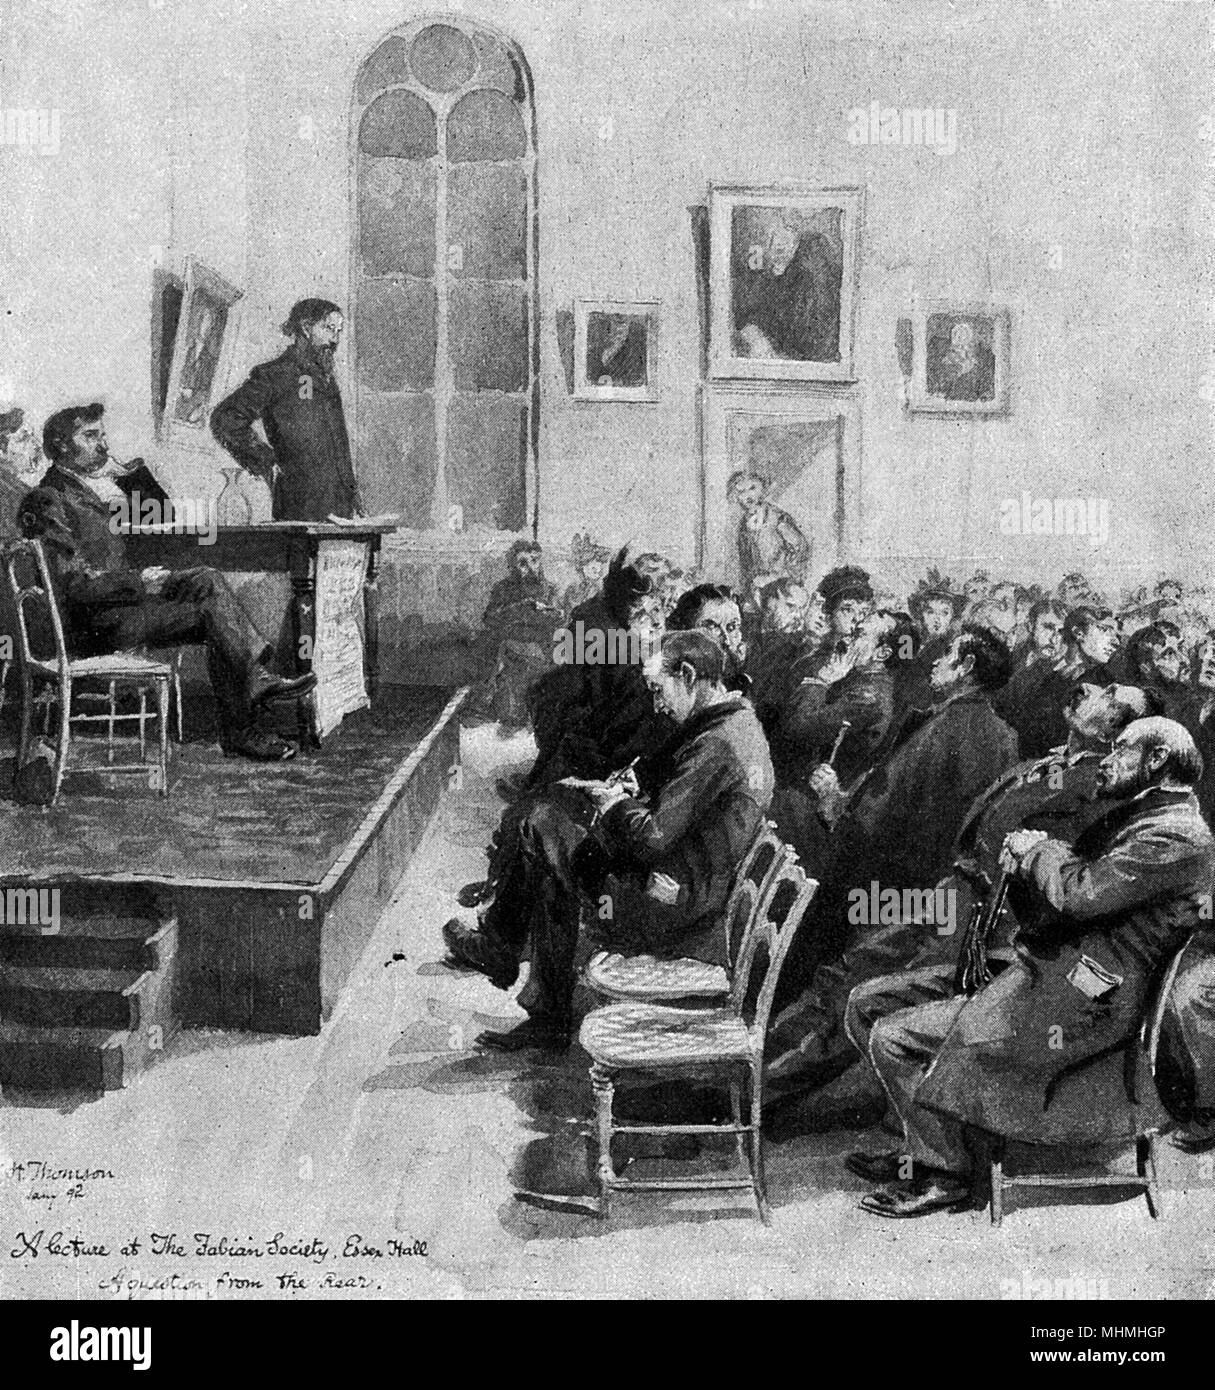 The Fabian Society meets at Essex Hall, London       Date: 1892 - Stock Image